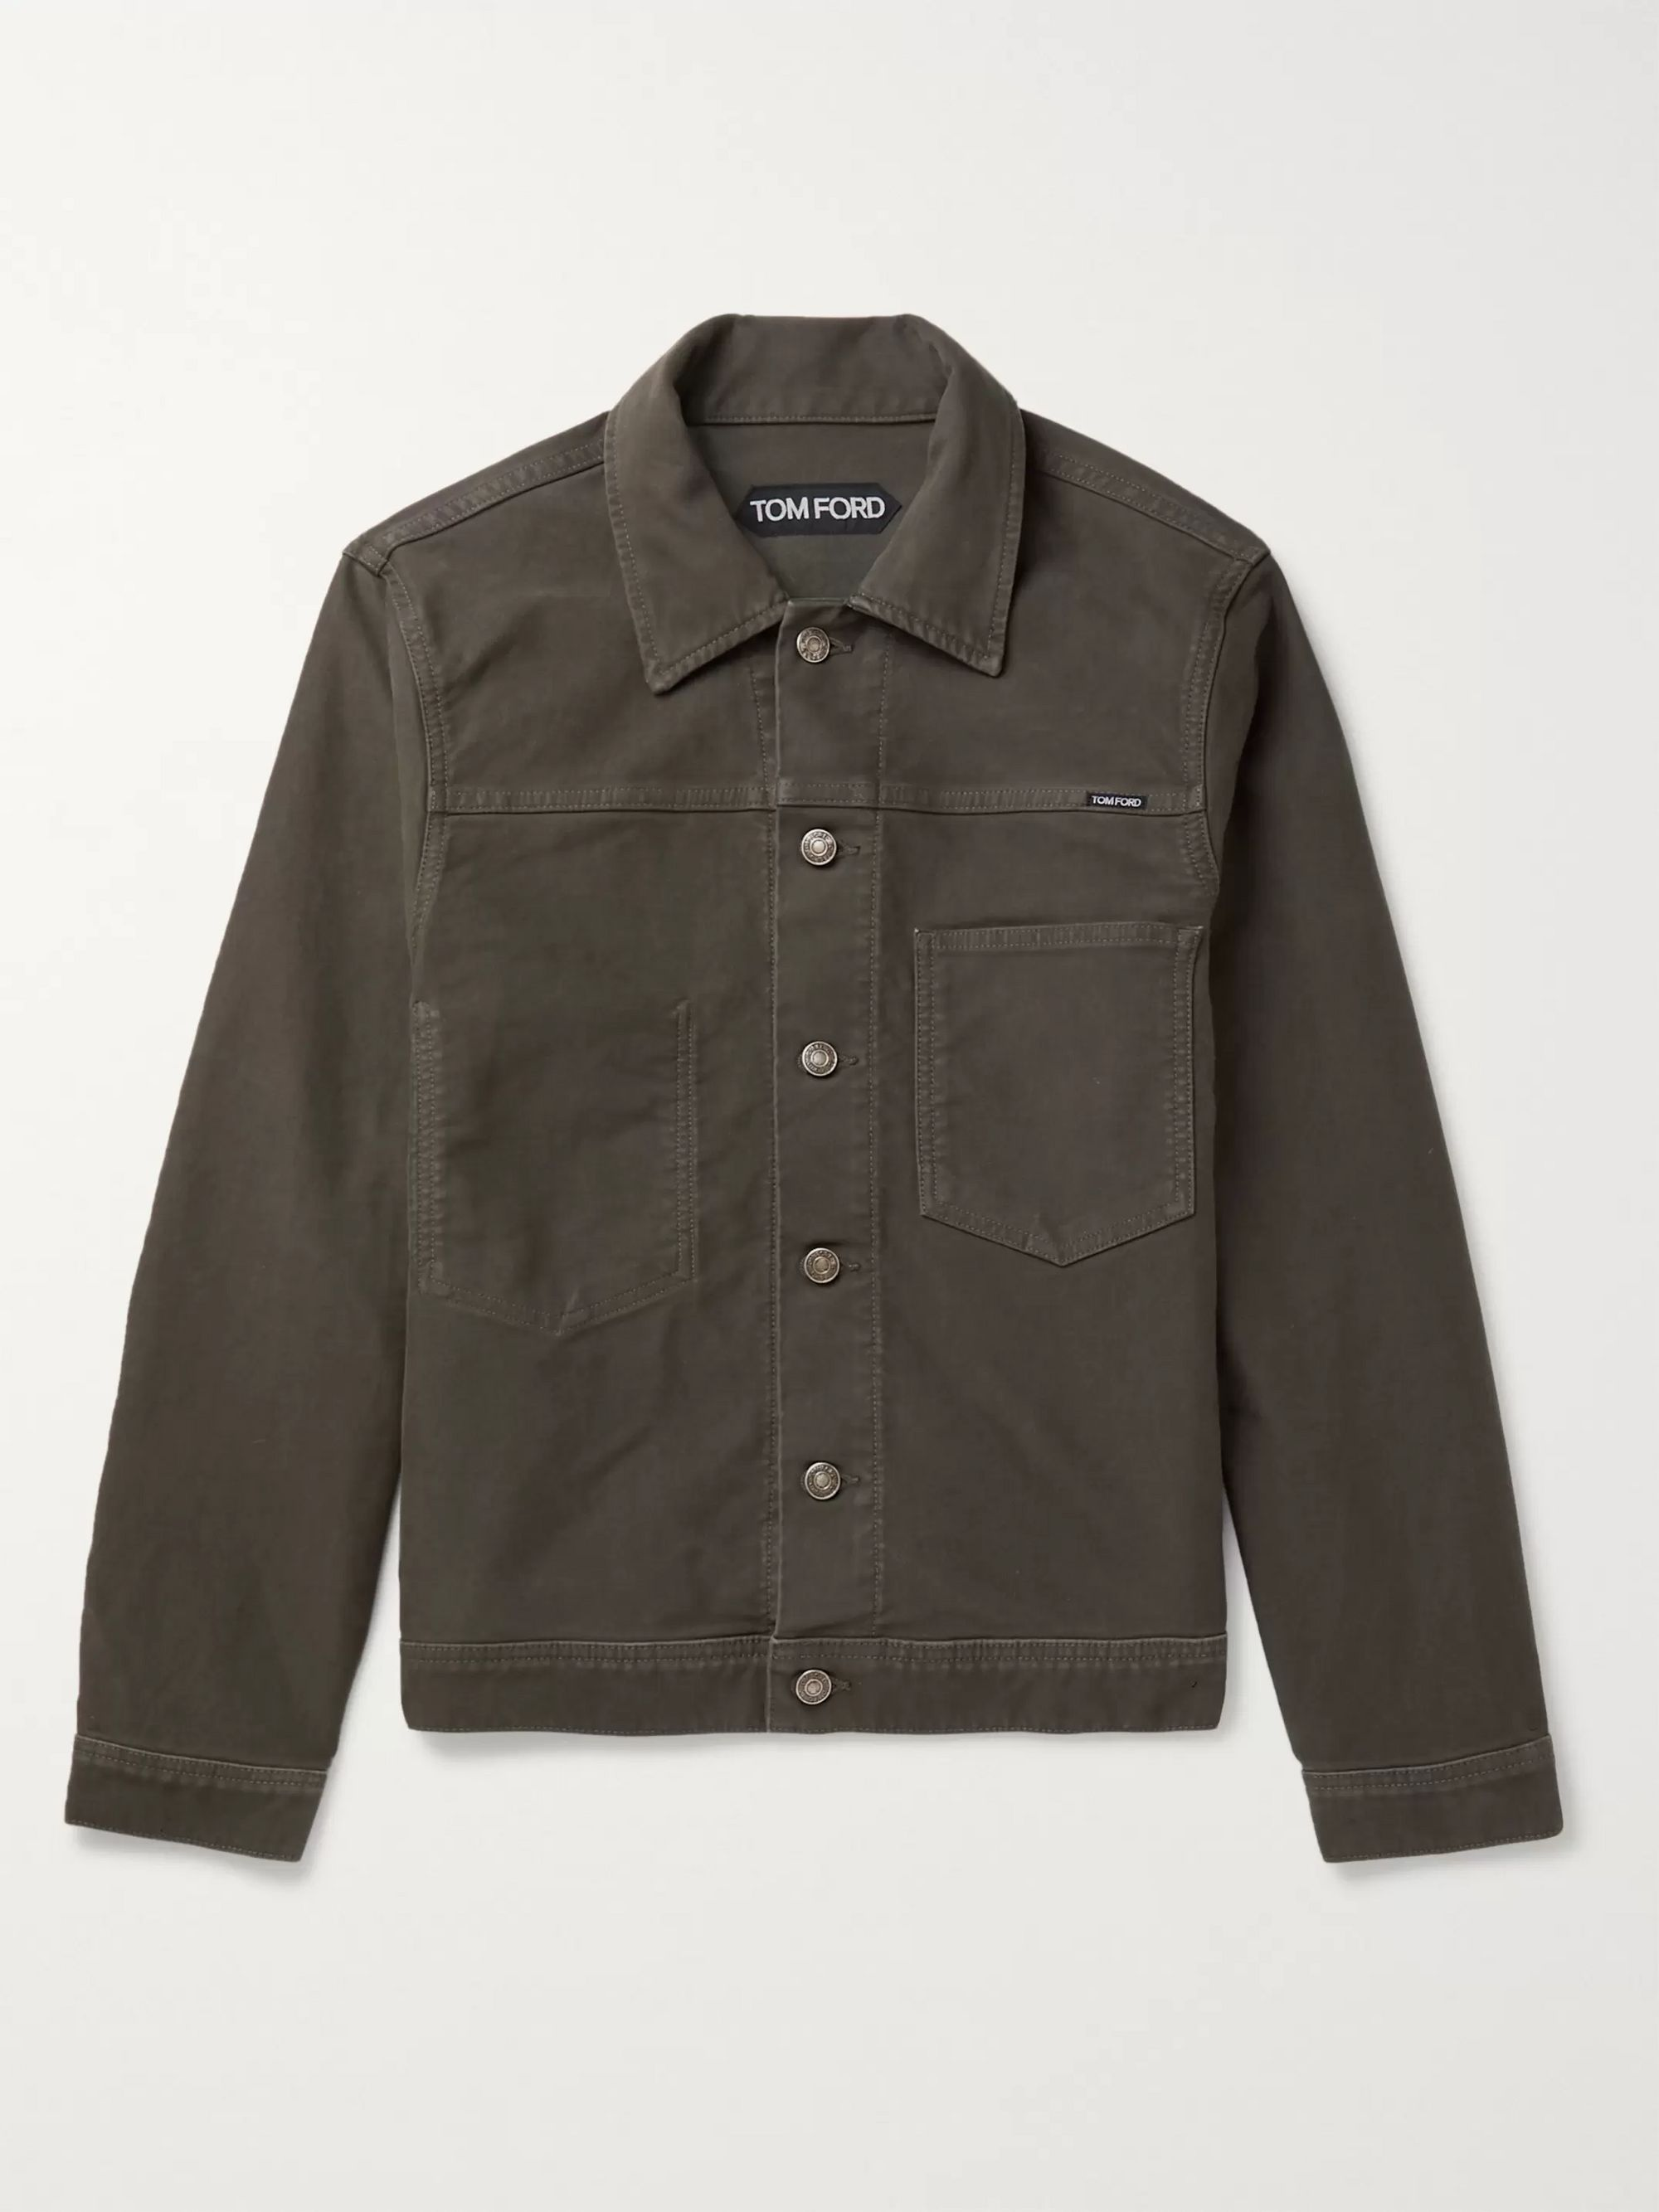 TOM FORD Cotton-Moleskin Trucker Jacket